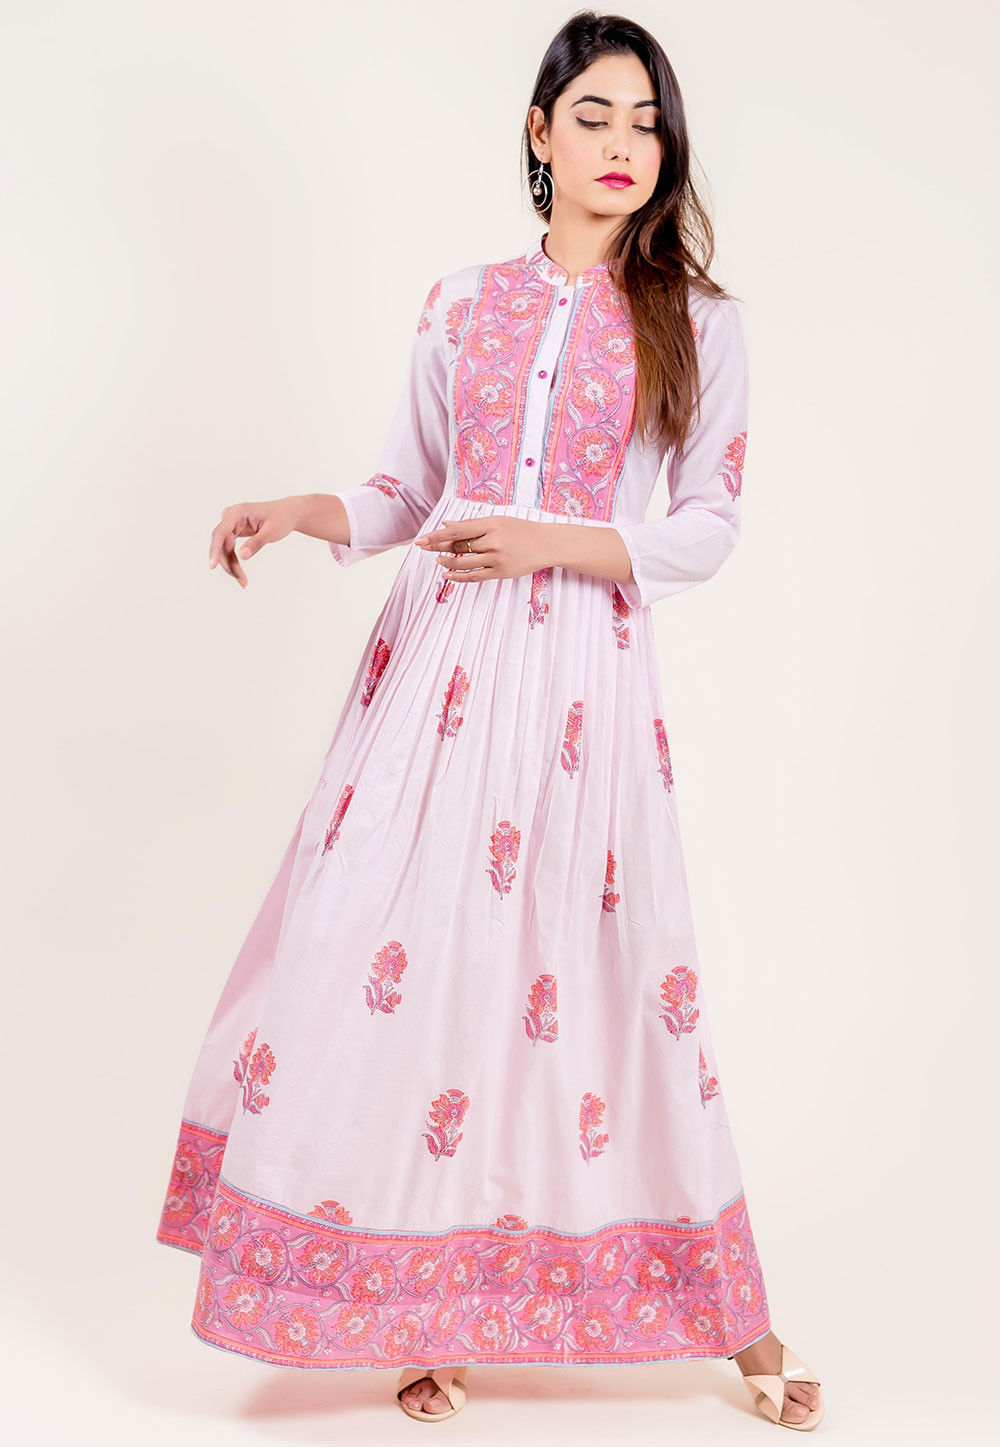 09f143eec0 ... Floral Printed Cotton Gown in White and Pink. Zoom